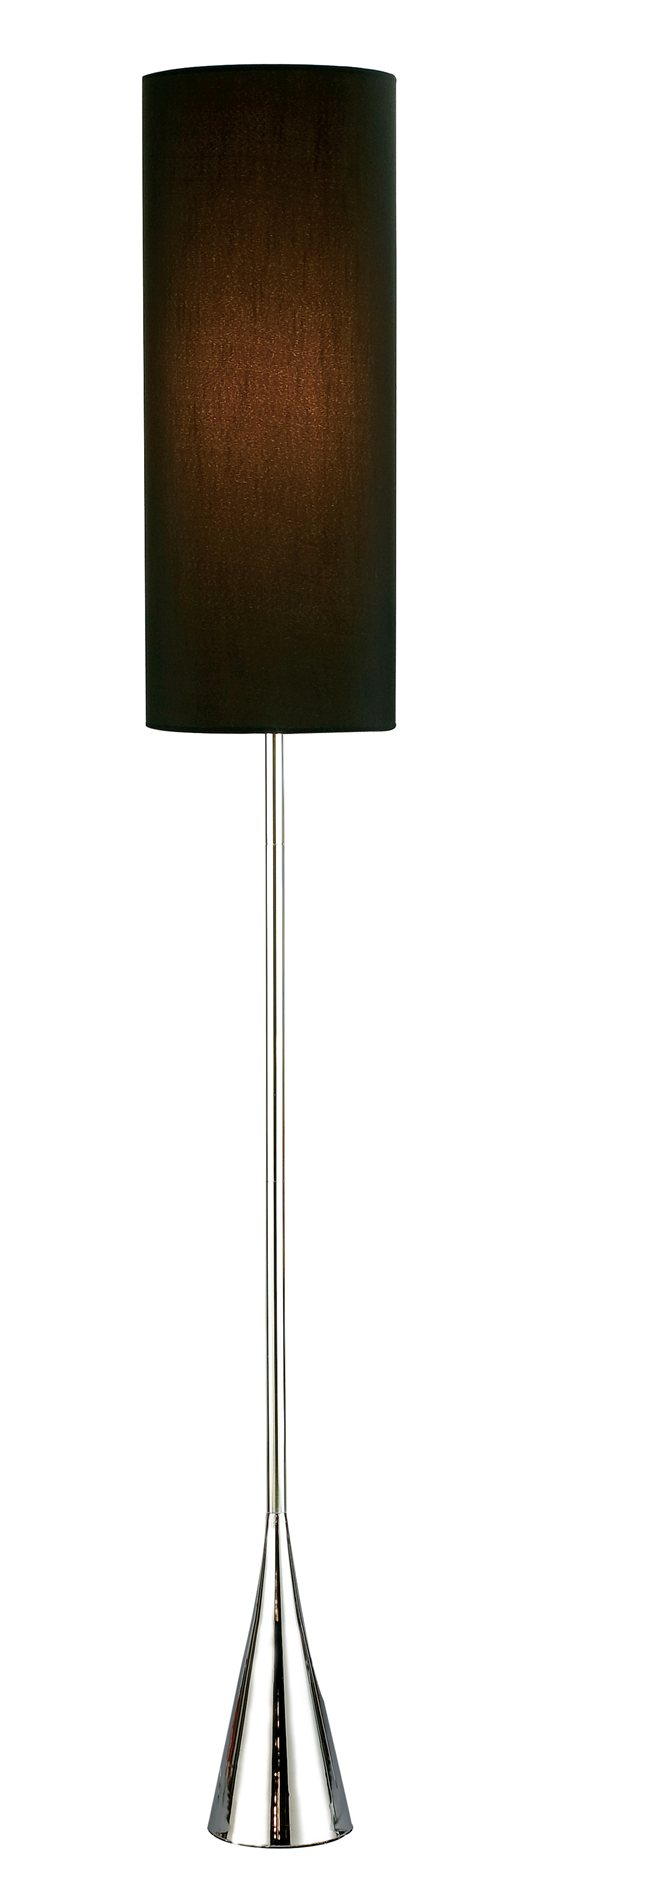 Adesso 4029 Bella Contemporary Floor Lamp Ad 4029